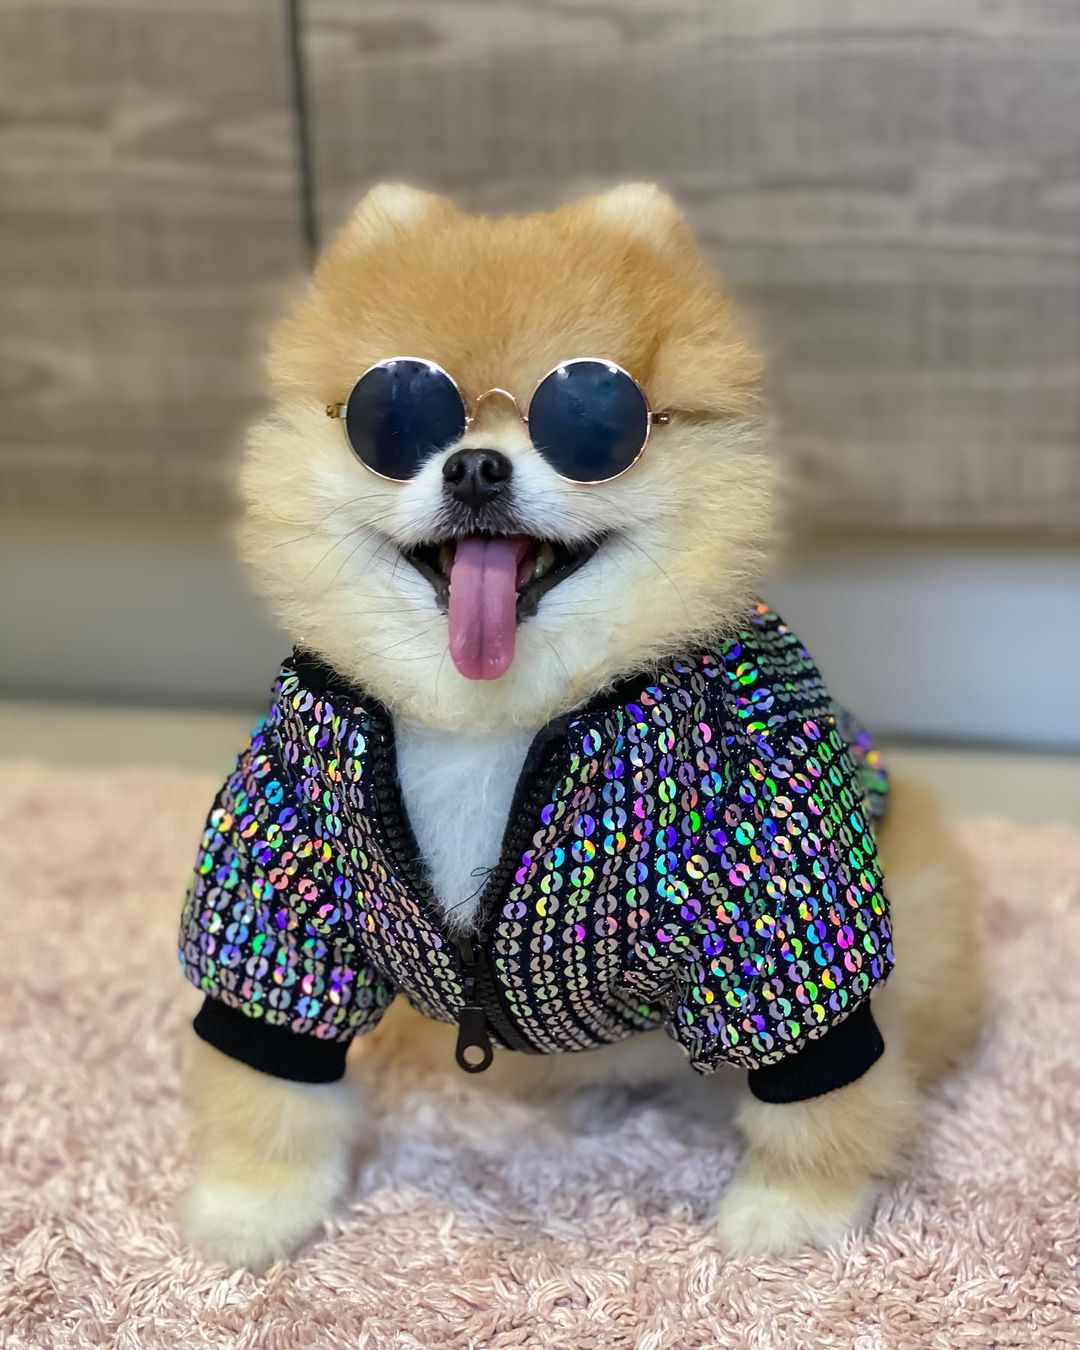 A pomeranian wearing round sunglasses and a colorful zip-up jacket.